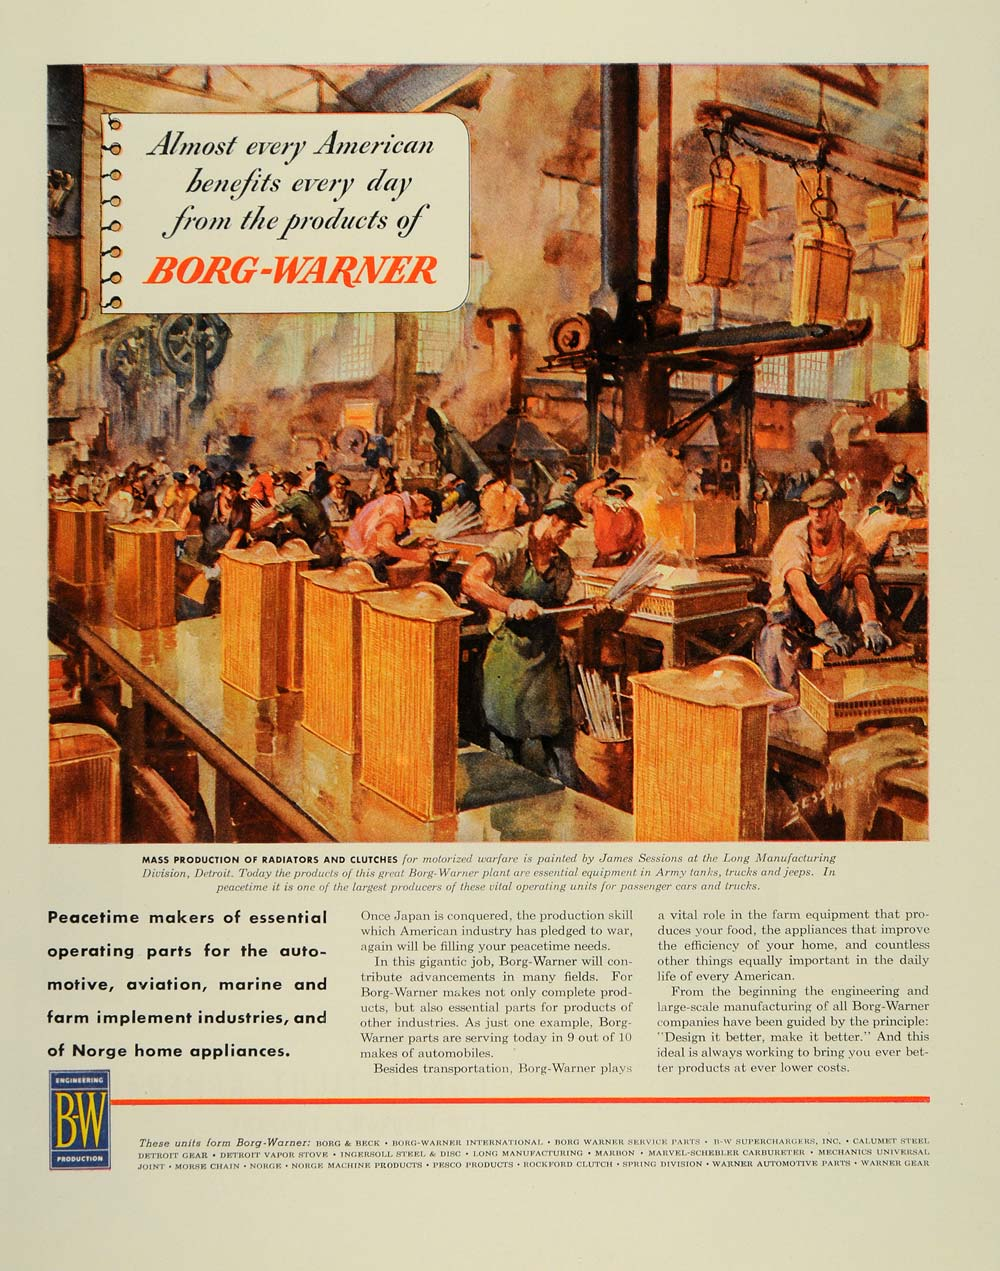 1945 Ad WWII Borg Warner Factory Plant James Sessions - ORIGINAL ADVERTISING FT6